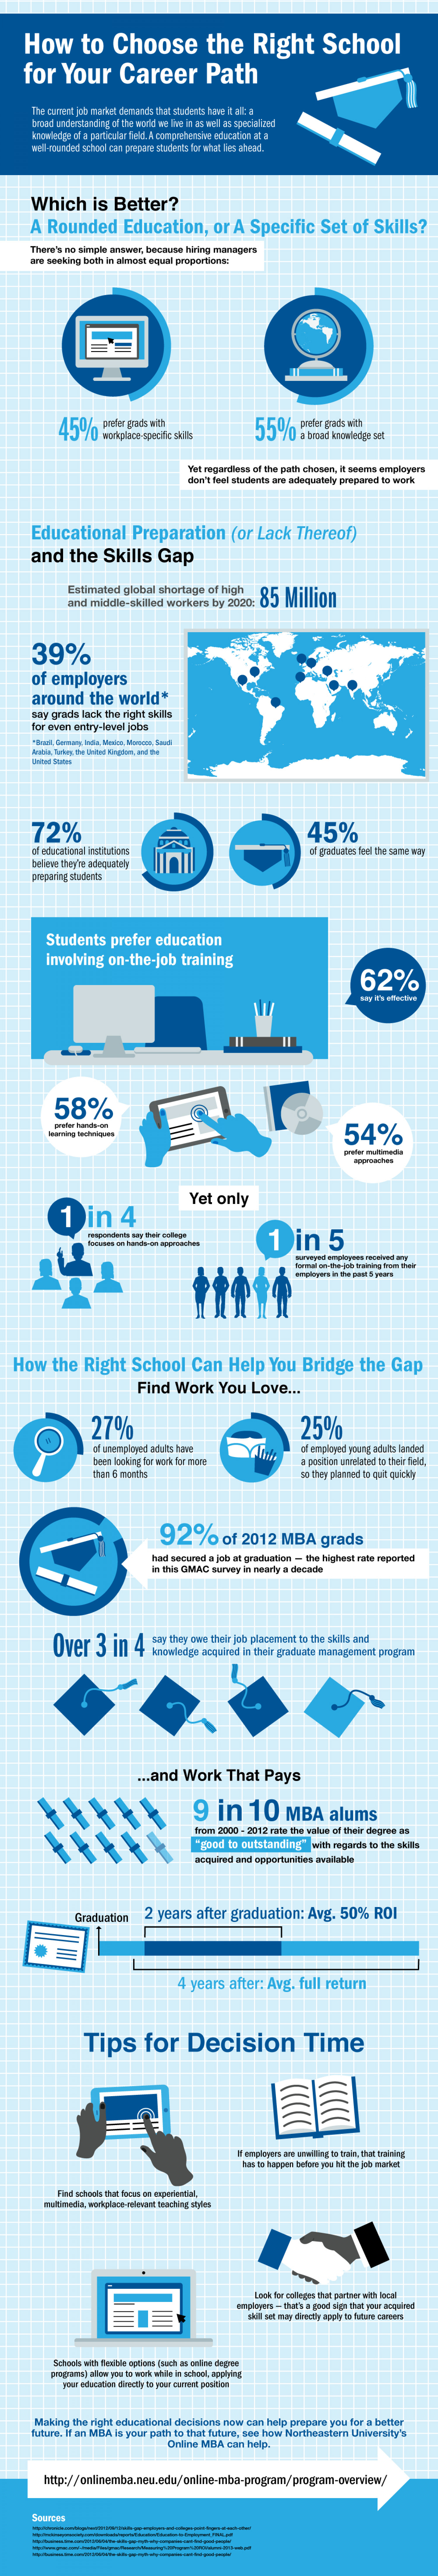 How To Choose the Right School For Your Career Path Infographic